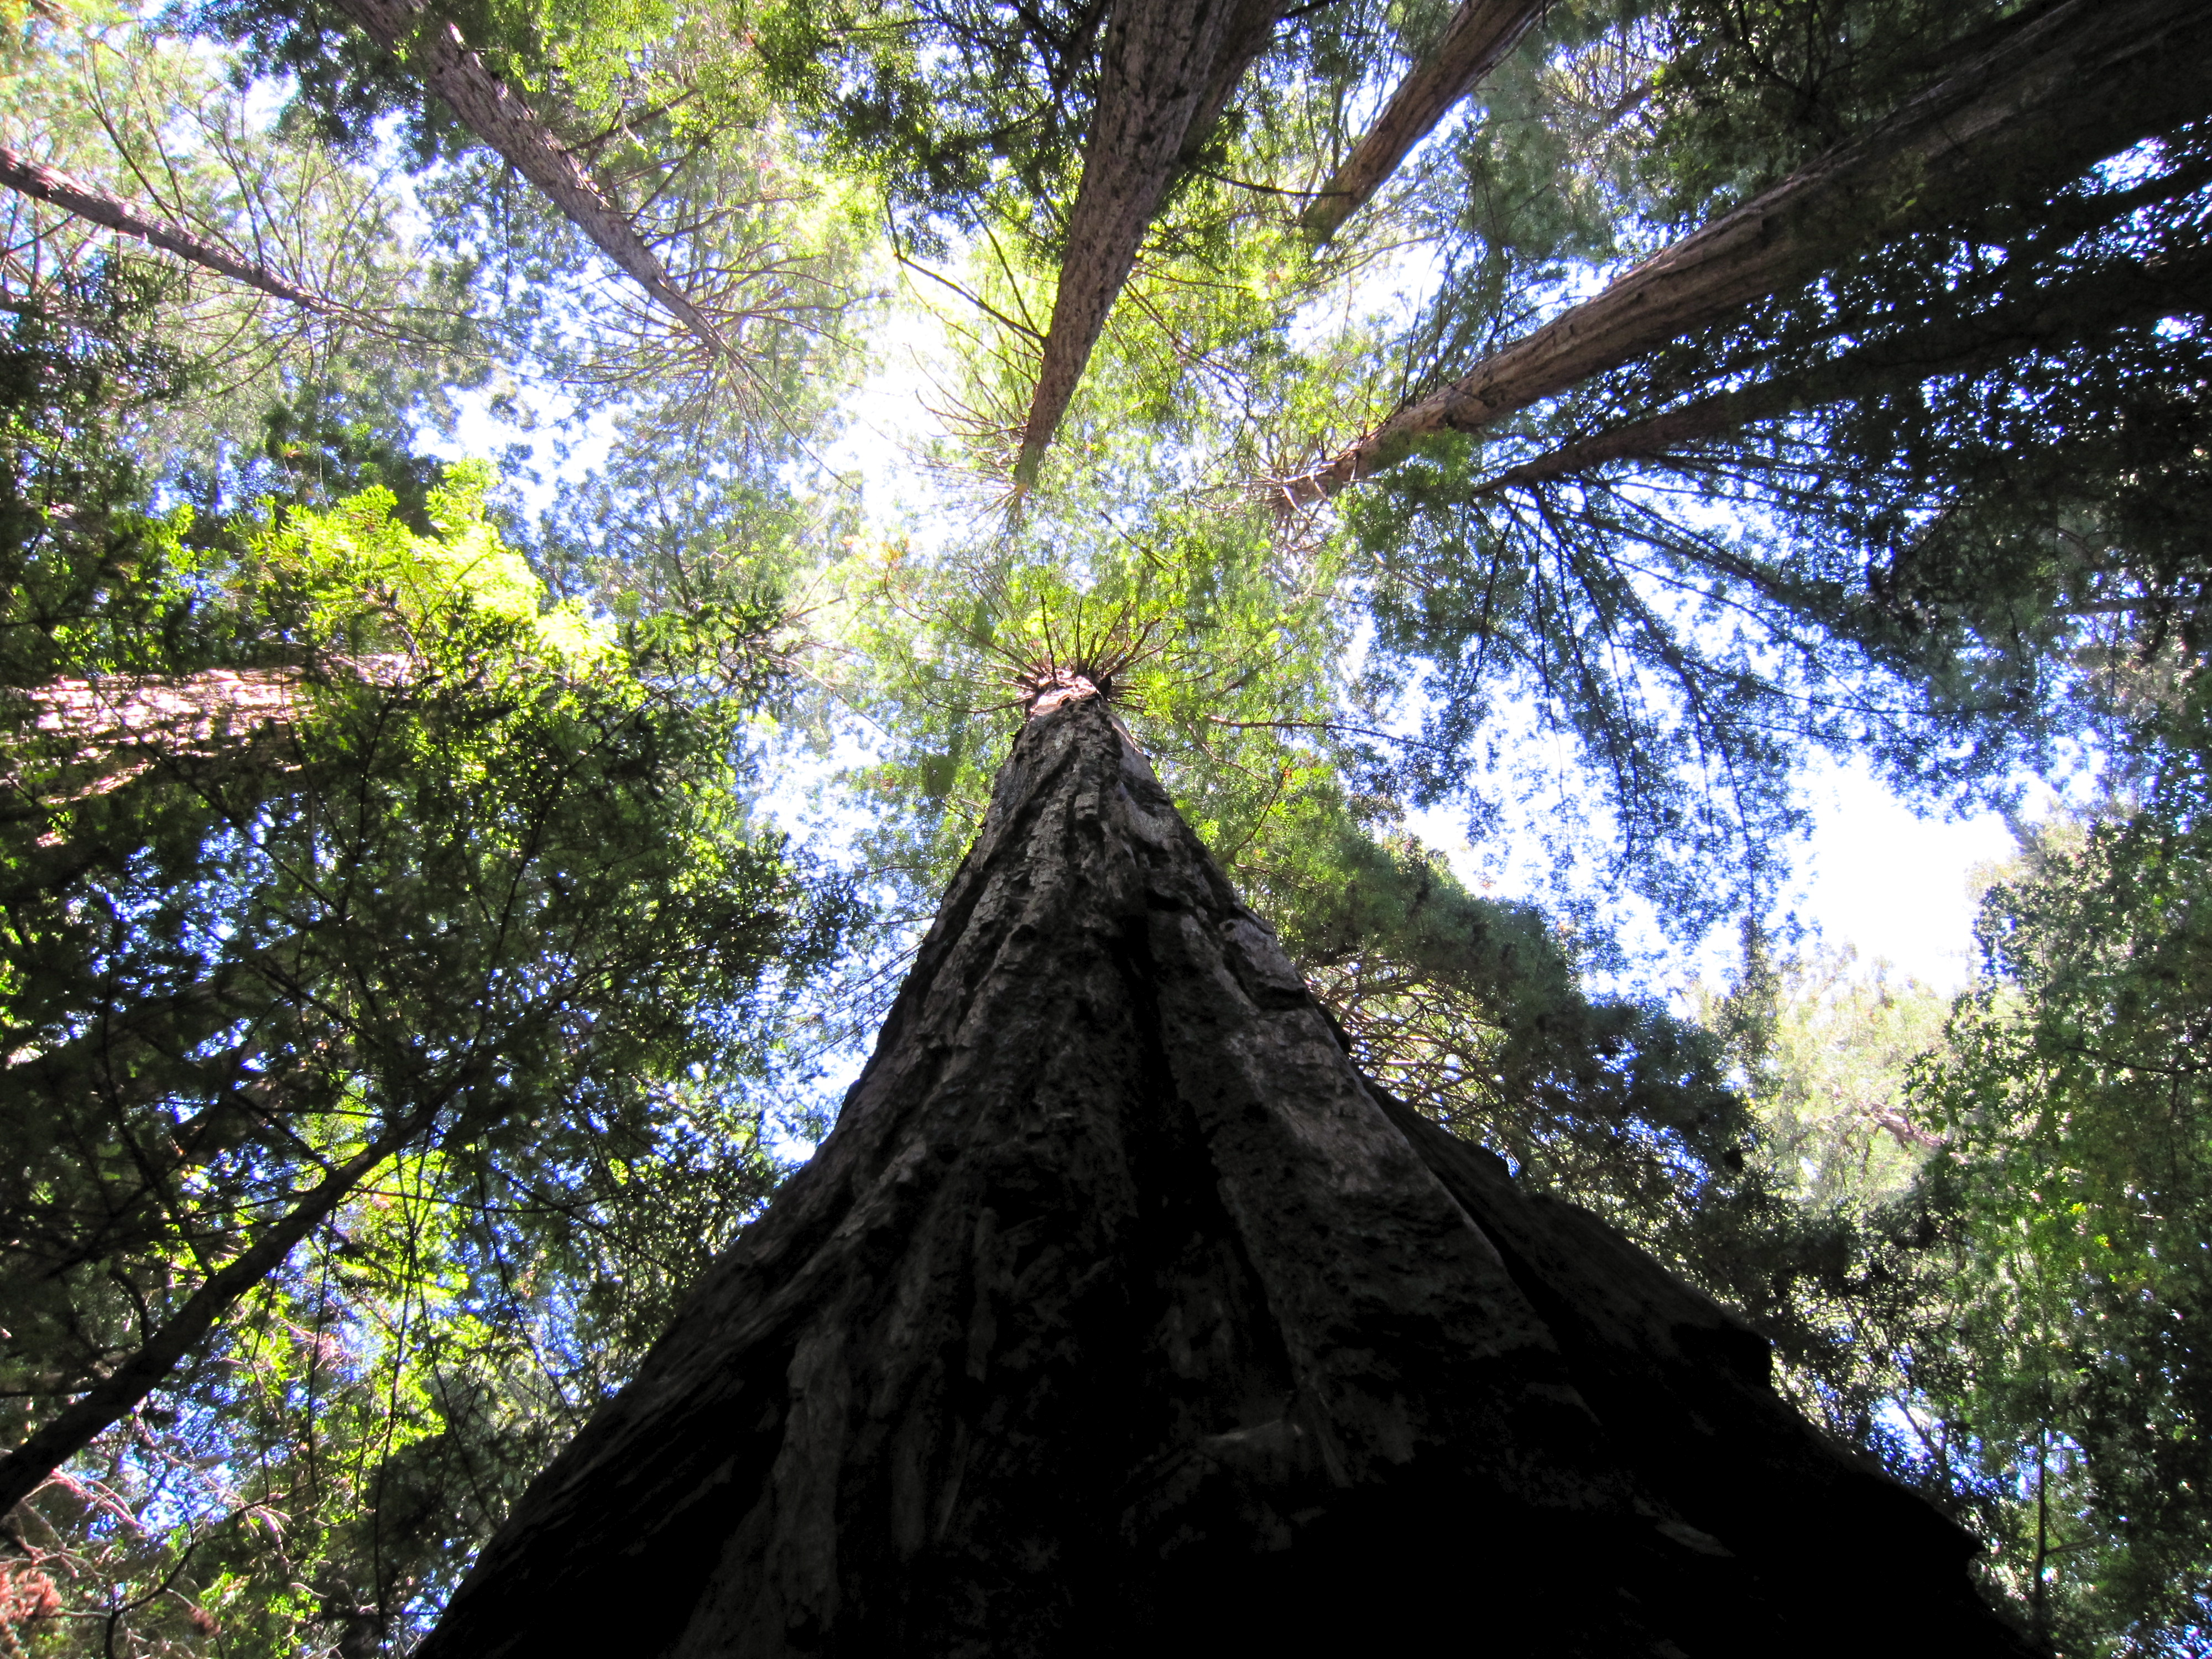 Looking up at massive redwoods in Muir Woods